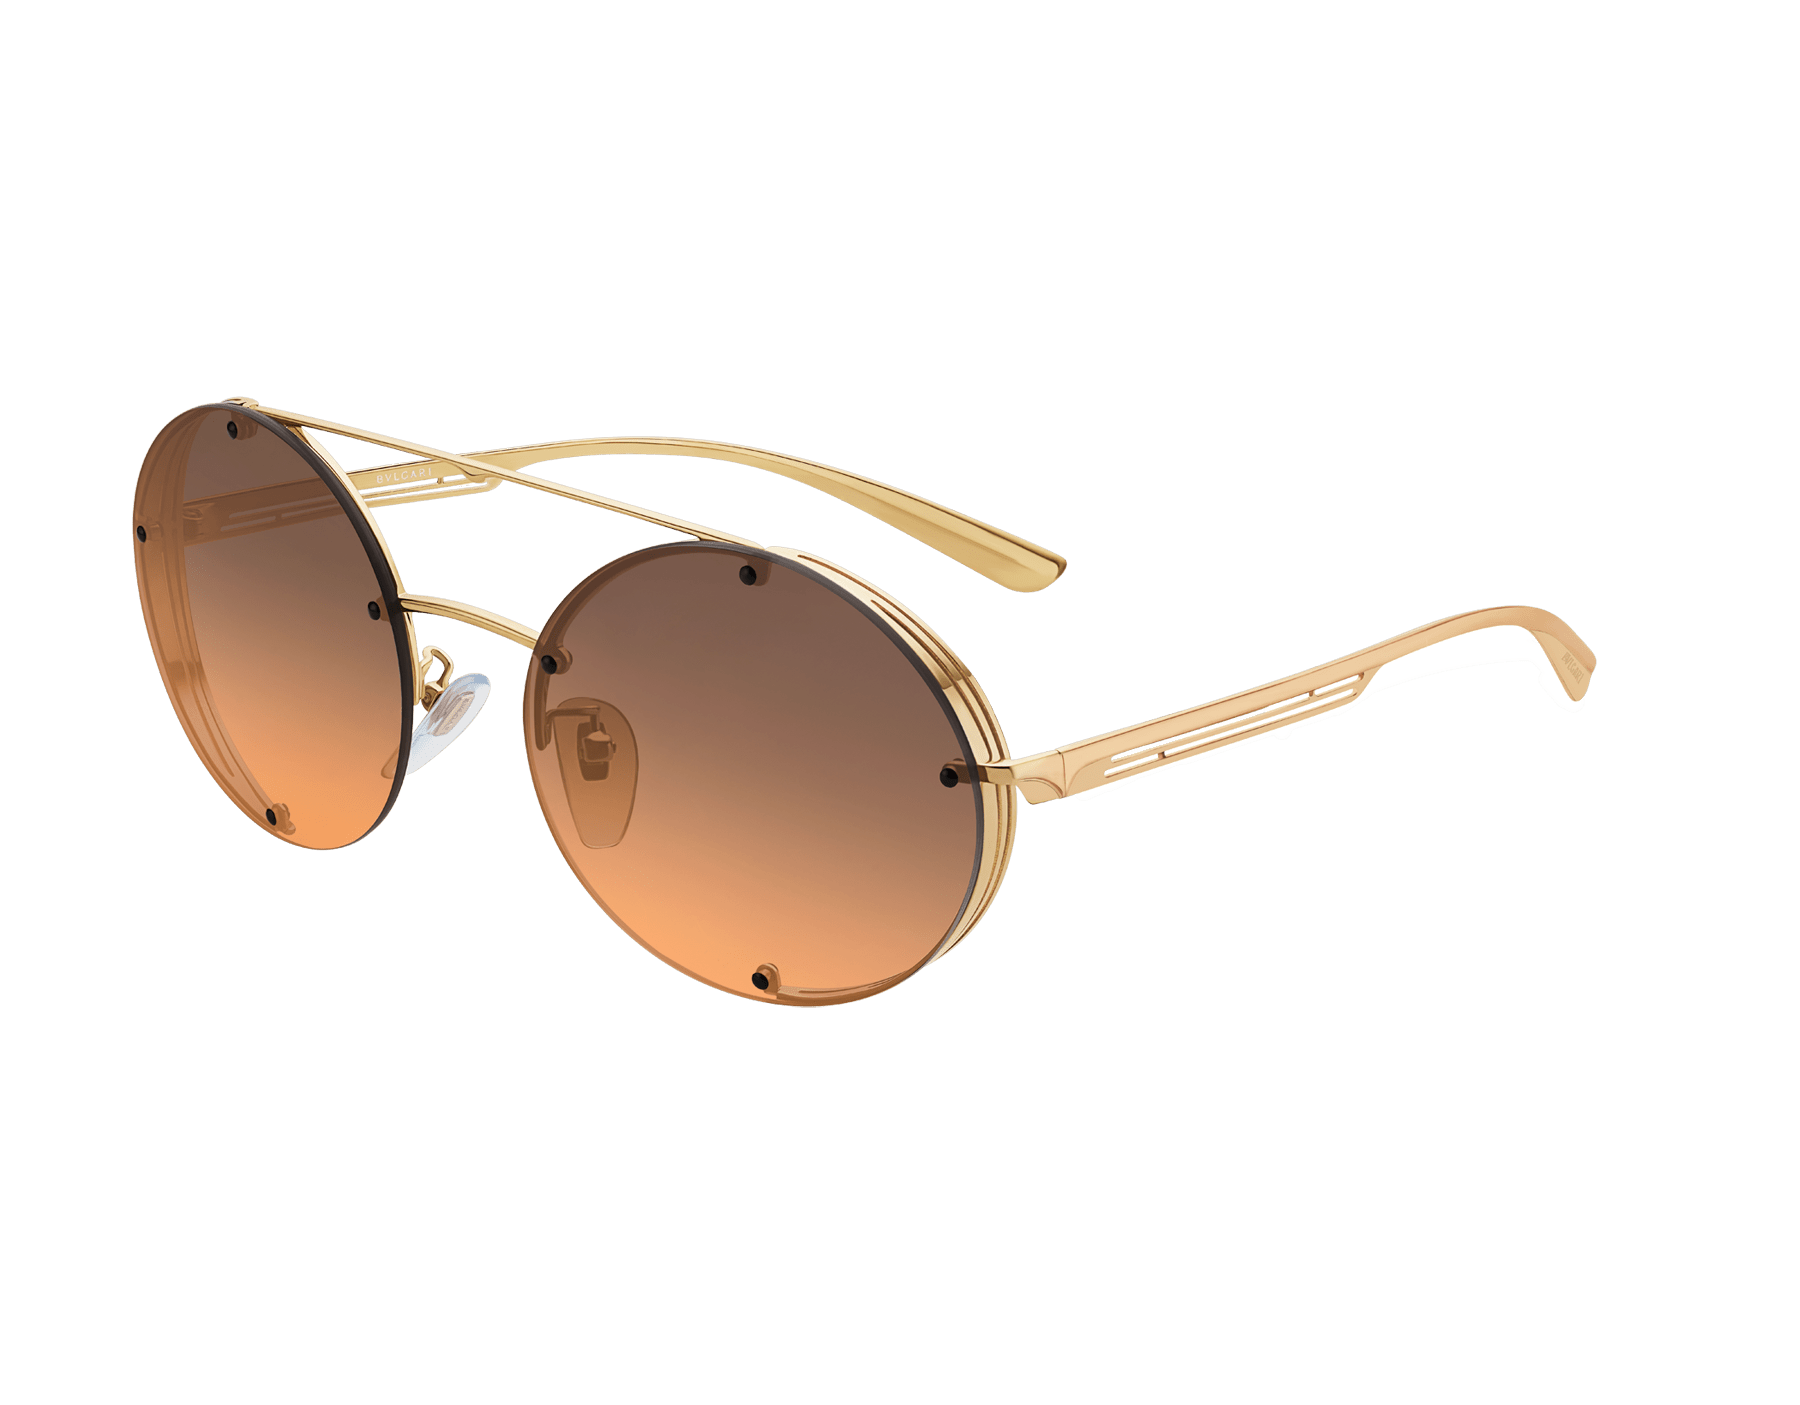 Bvlgari B.zero1 B.flyingstripe round metal aviator sunglasses. 903817 image 1